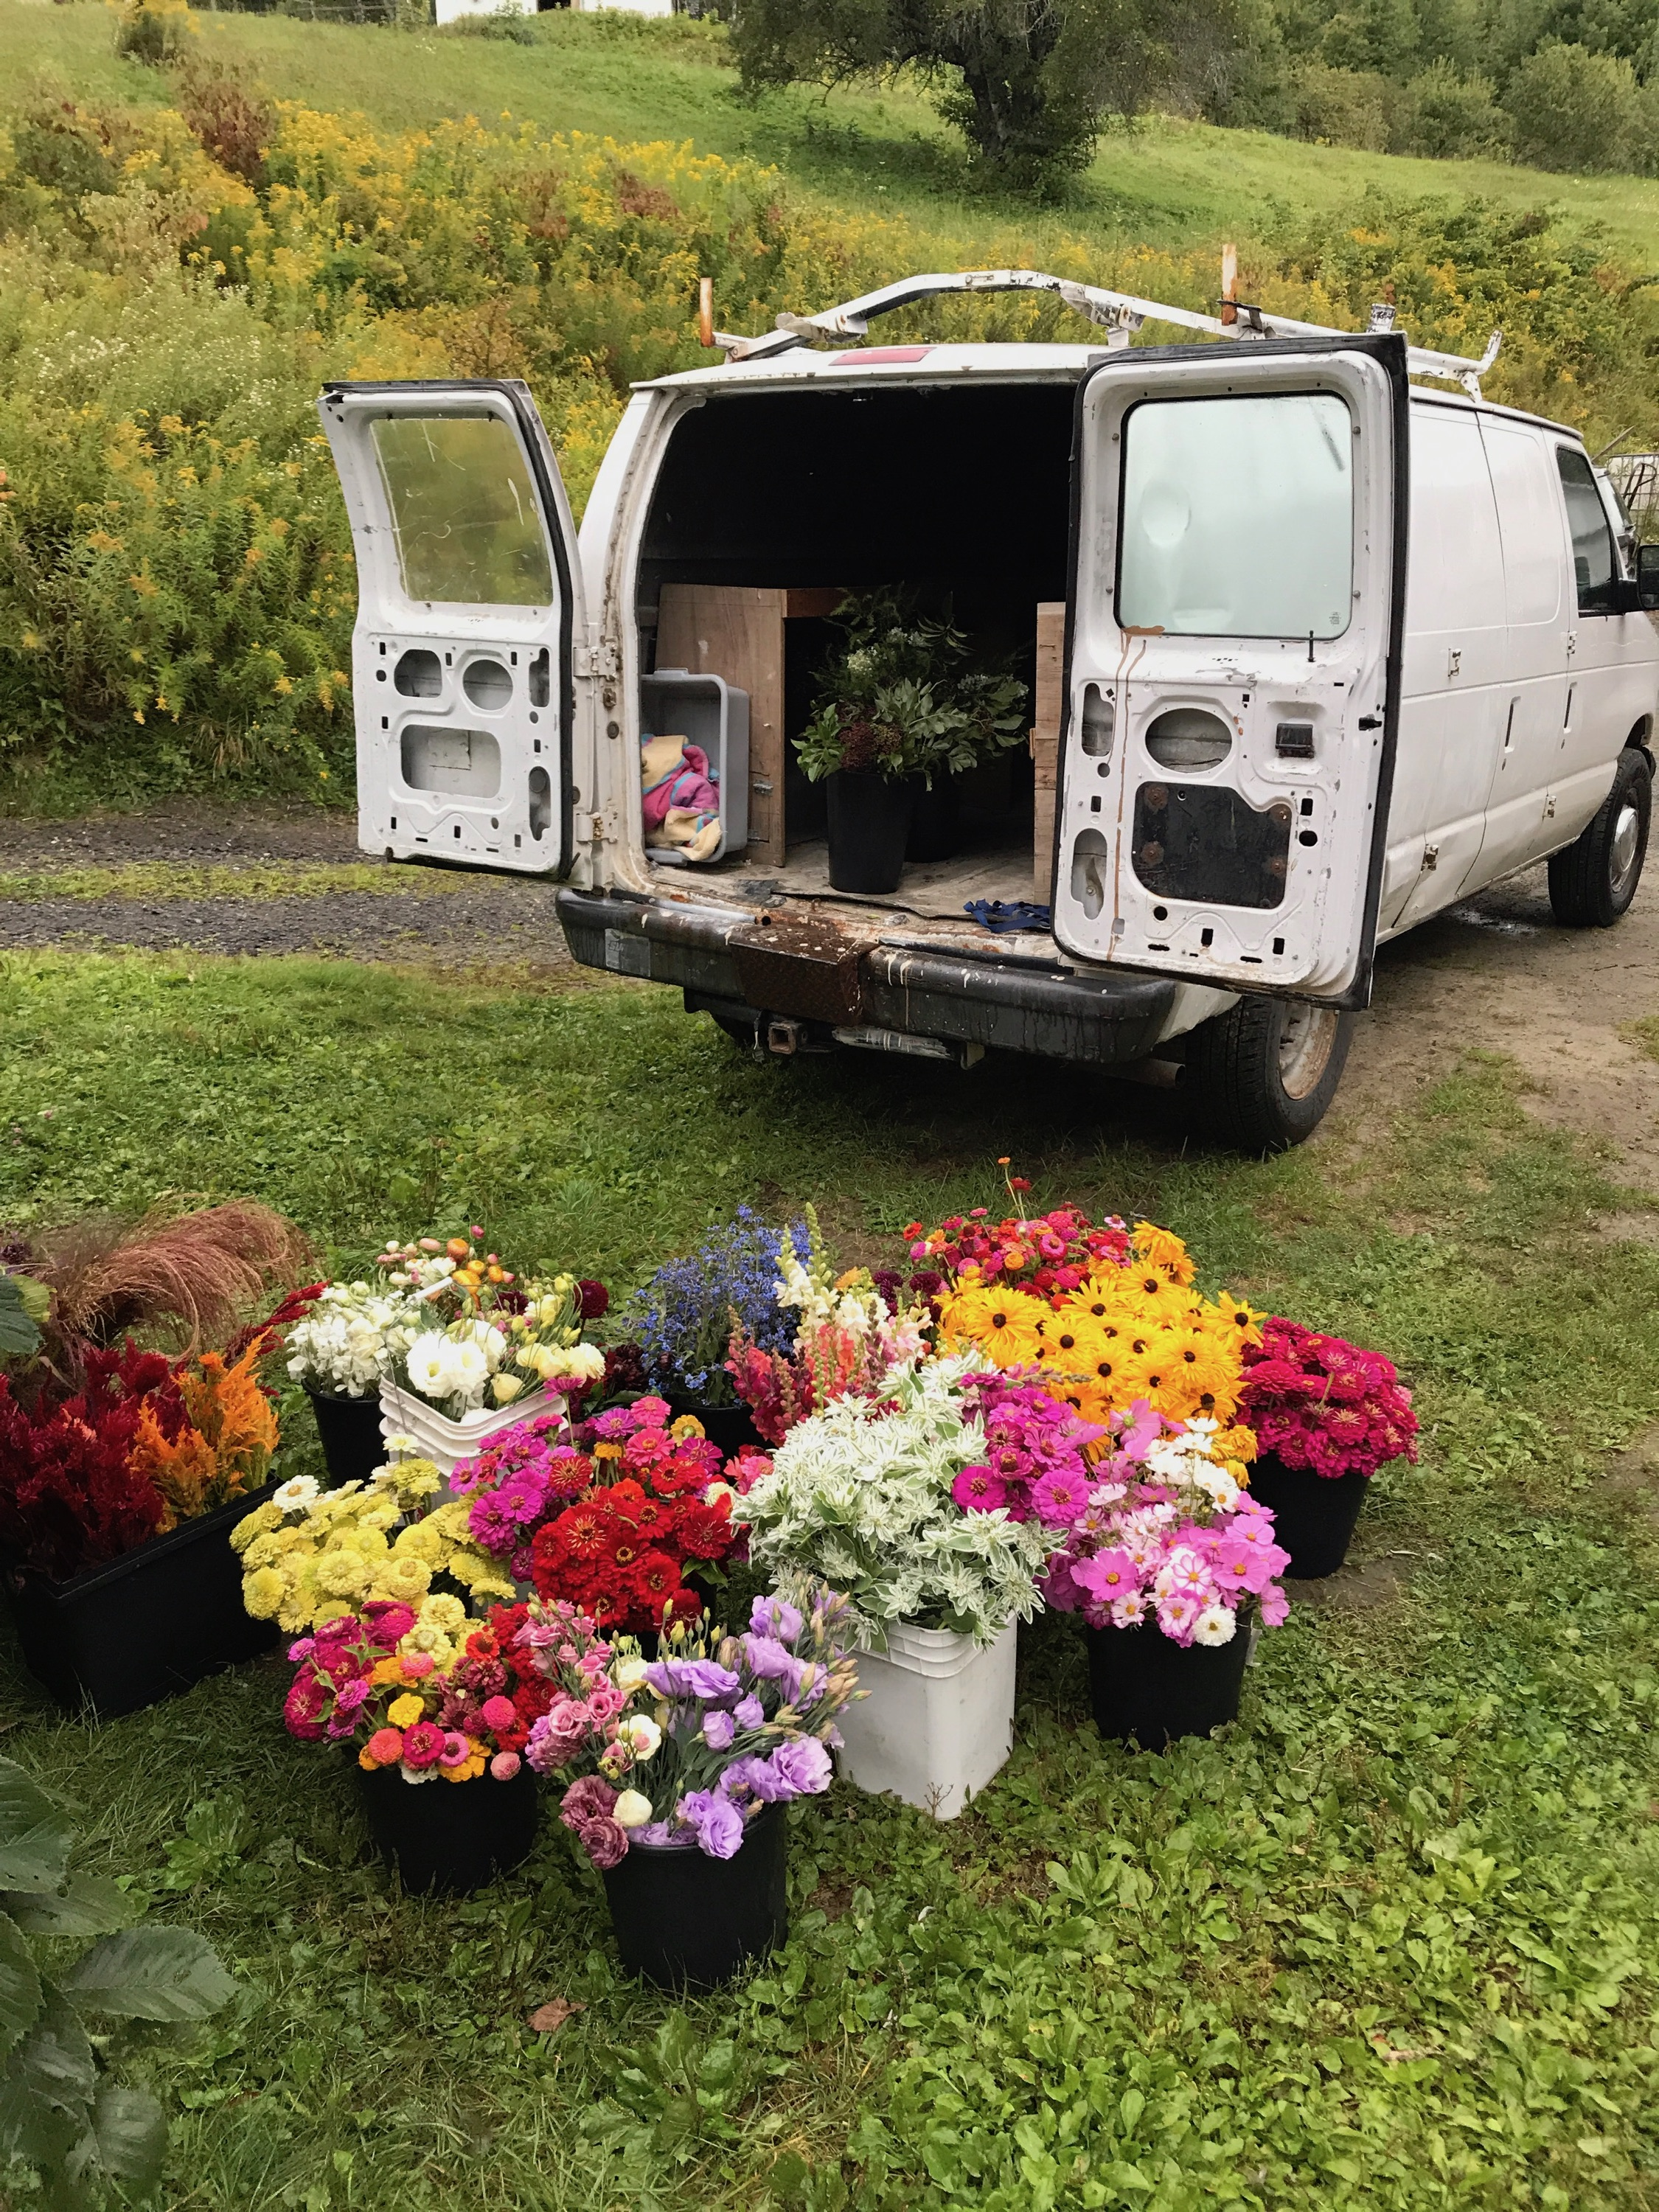 Stitchdown Farm local wholesale flowers  Vermont